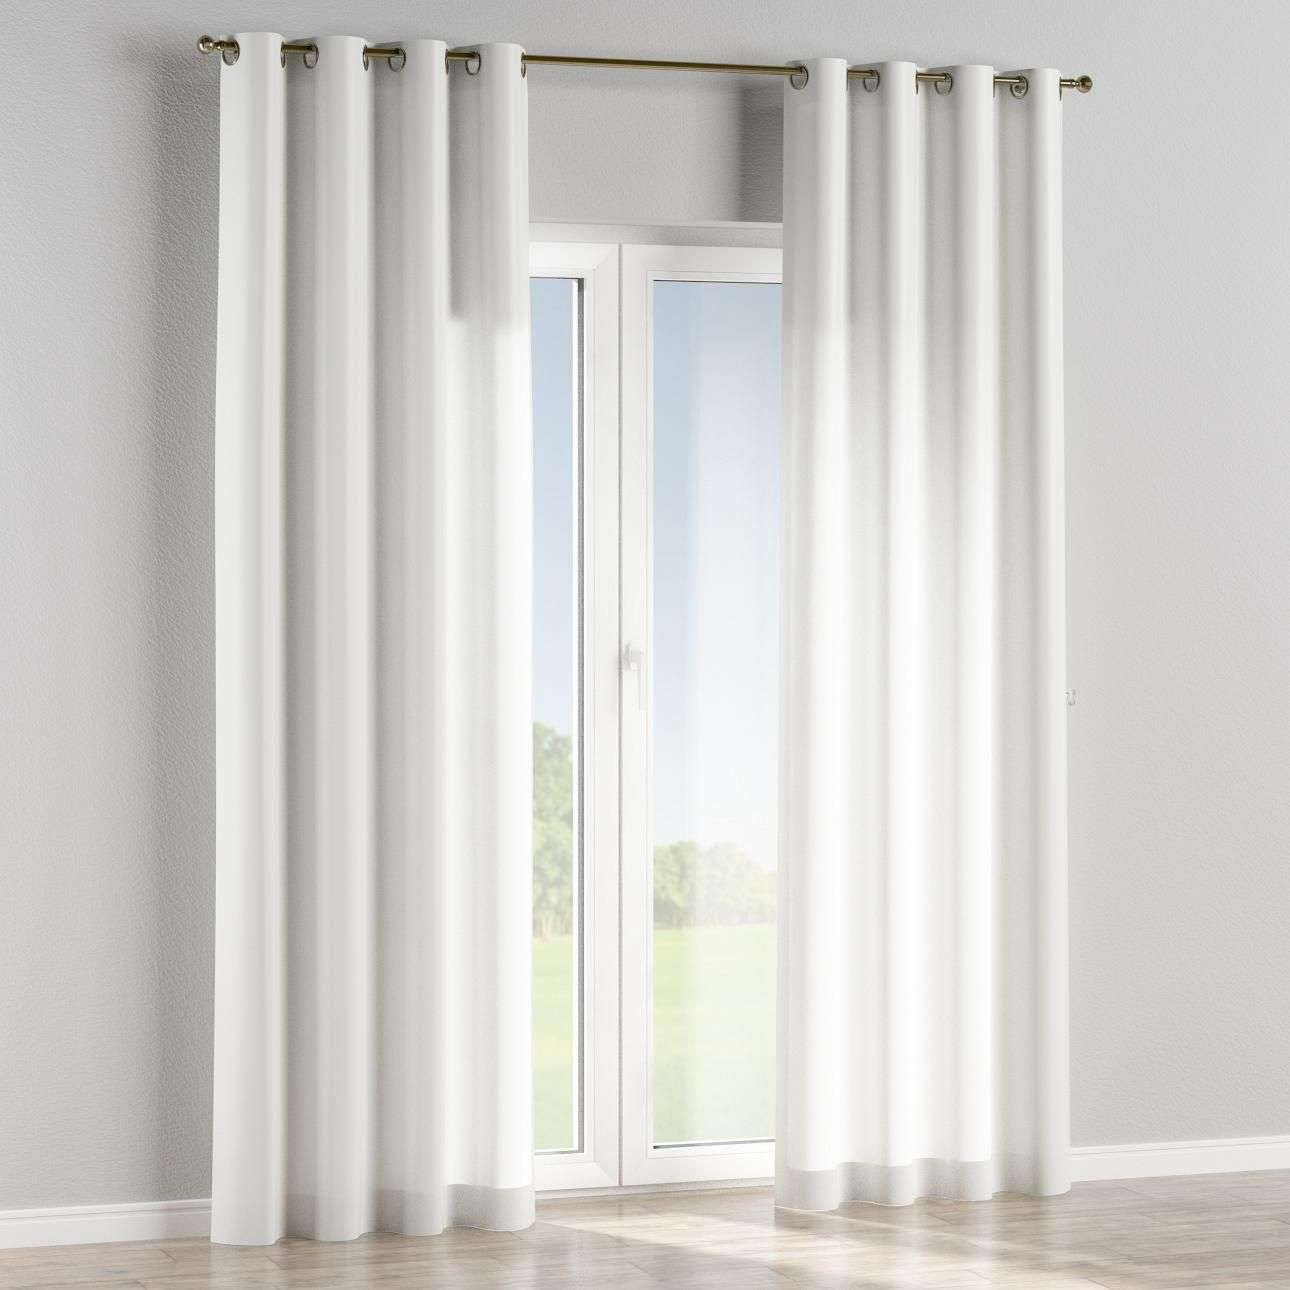 Eyelet curtains in collection Rustica, fabric: 138-11